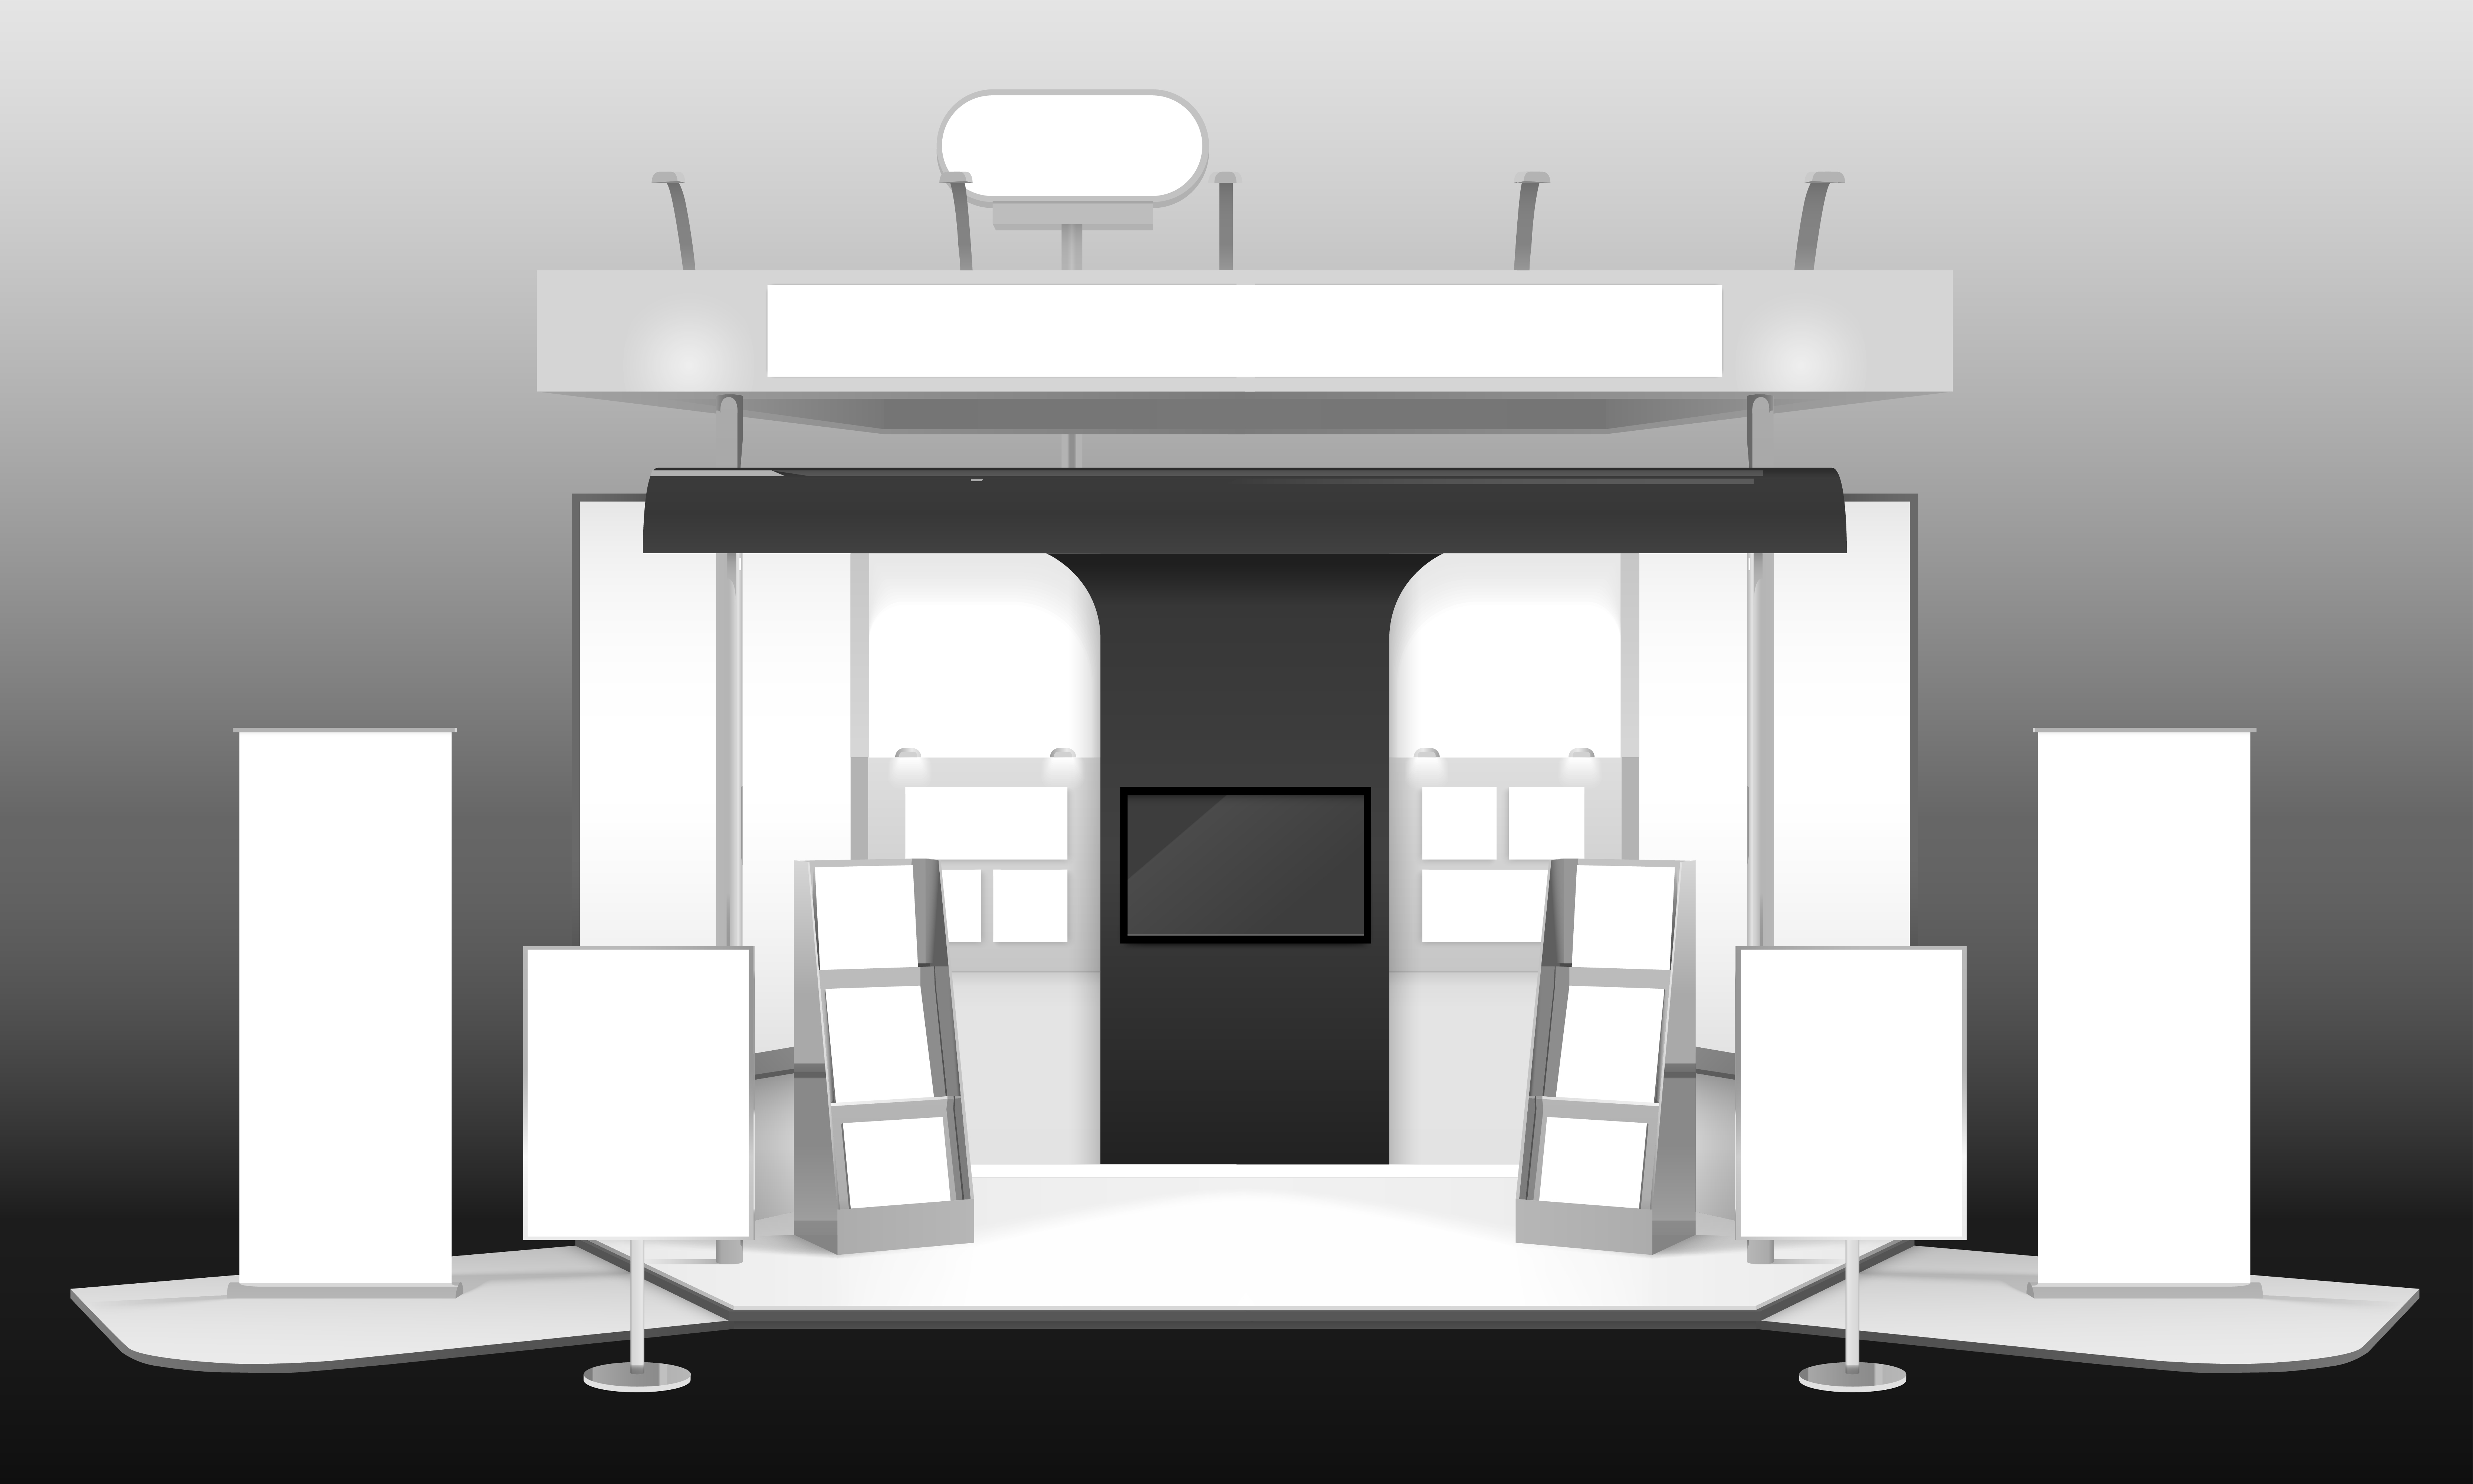 Exhibition Stand White : Exhibition stand d design mockup download free vector art